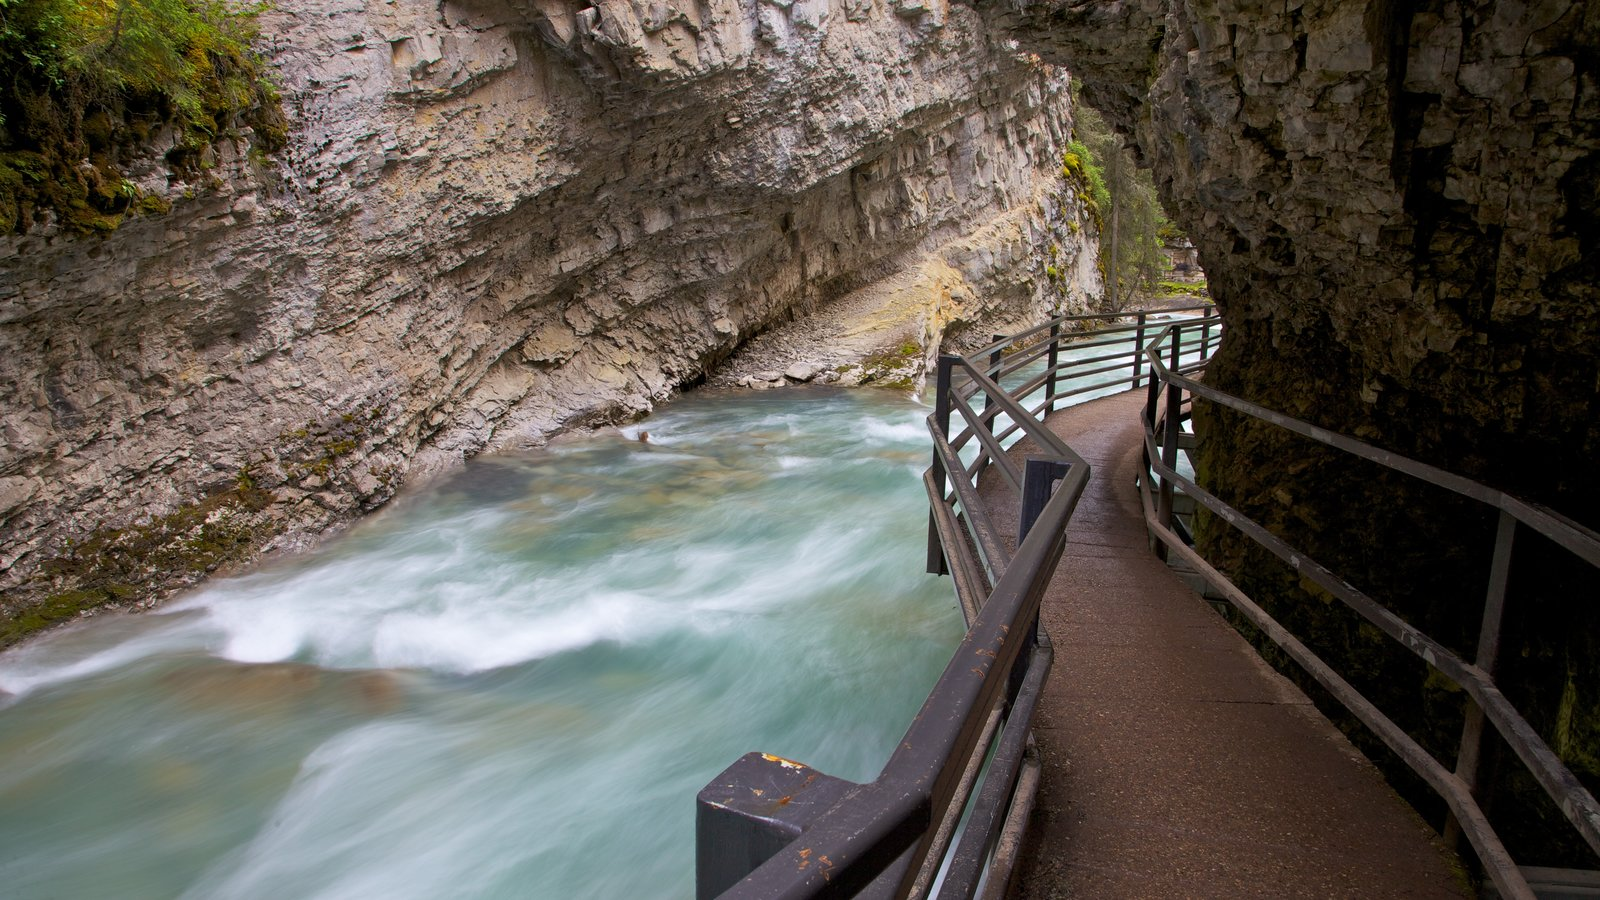 Johnston Canyon featuring a river or creek, a gorge or canyon and landscape views